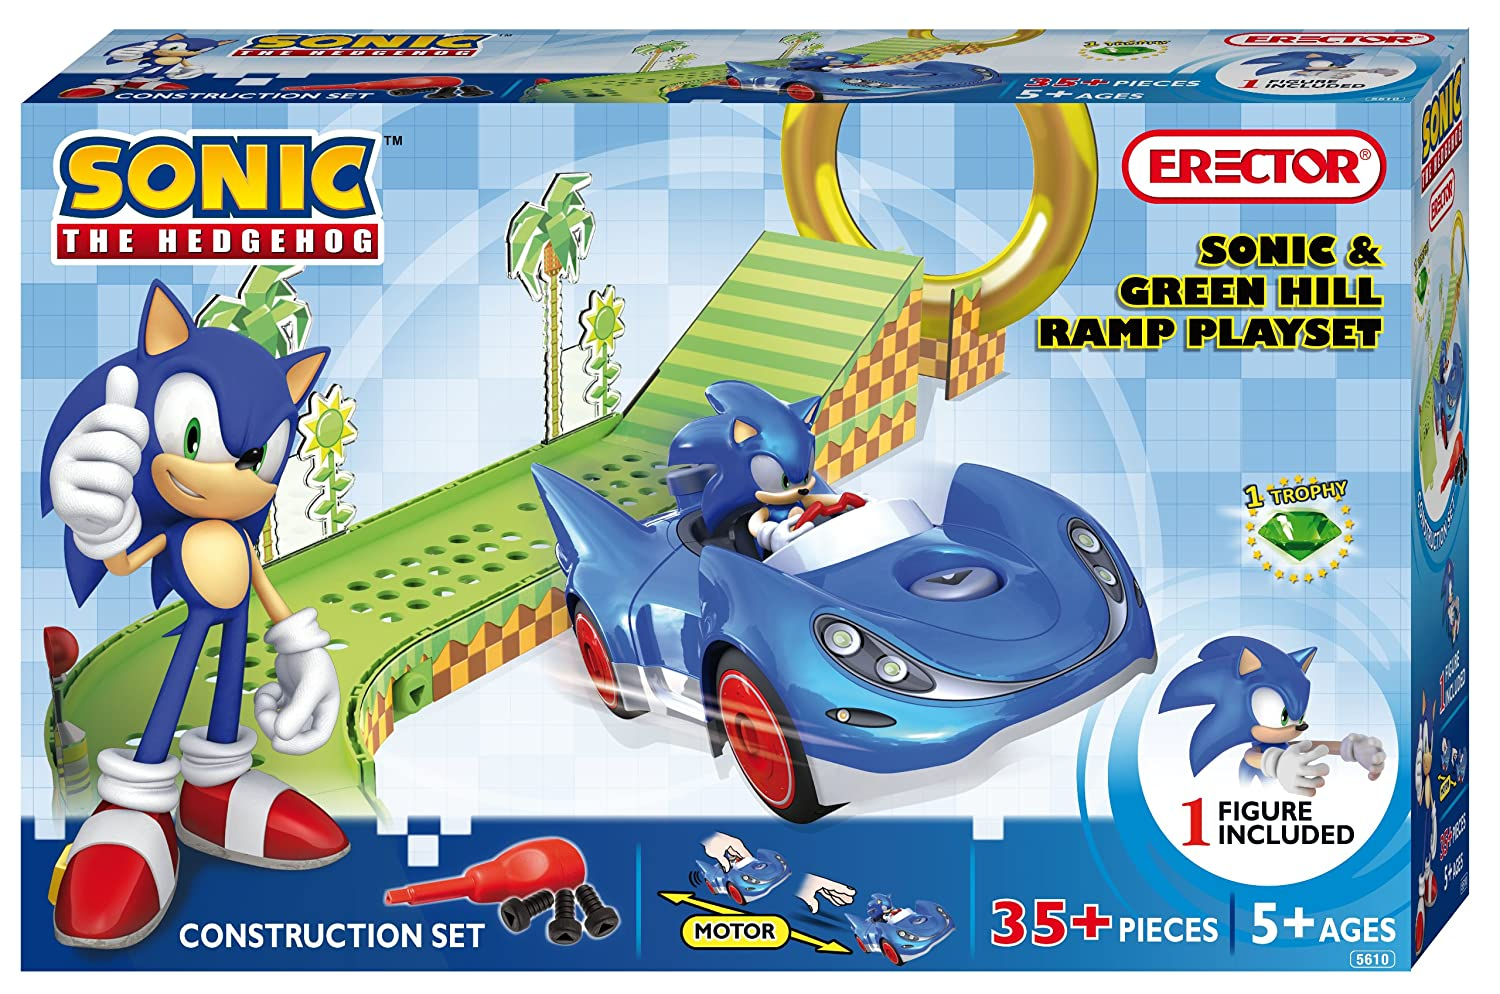 Erector Sonic the Hedgehog Construction Playset - Sonic and verde Hill Ramp